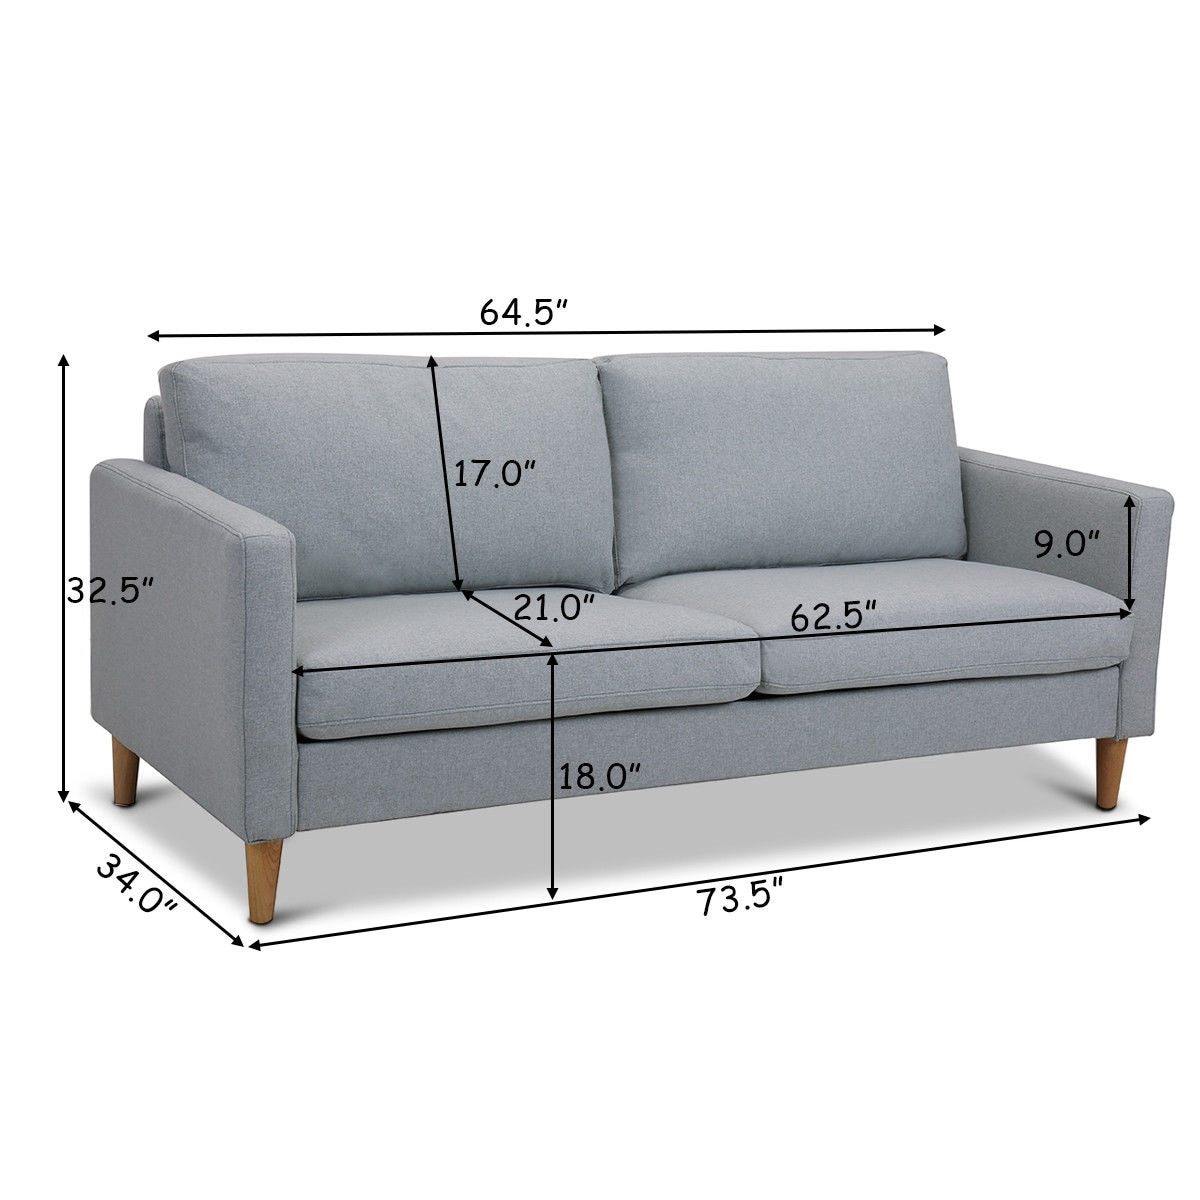 Couch Sofa Love Seat Upholstered Bed